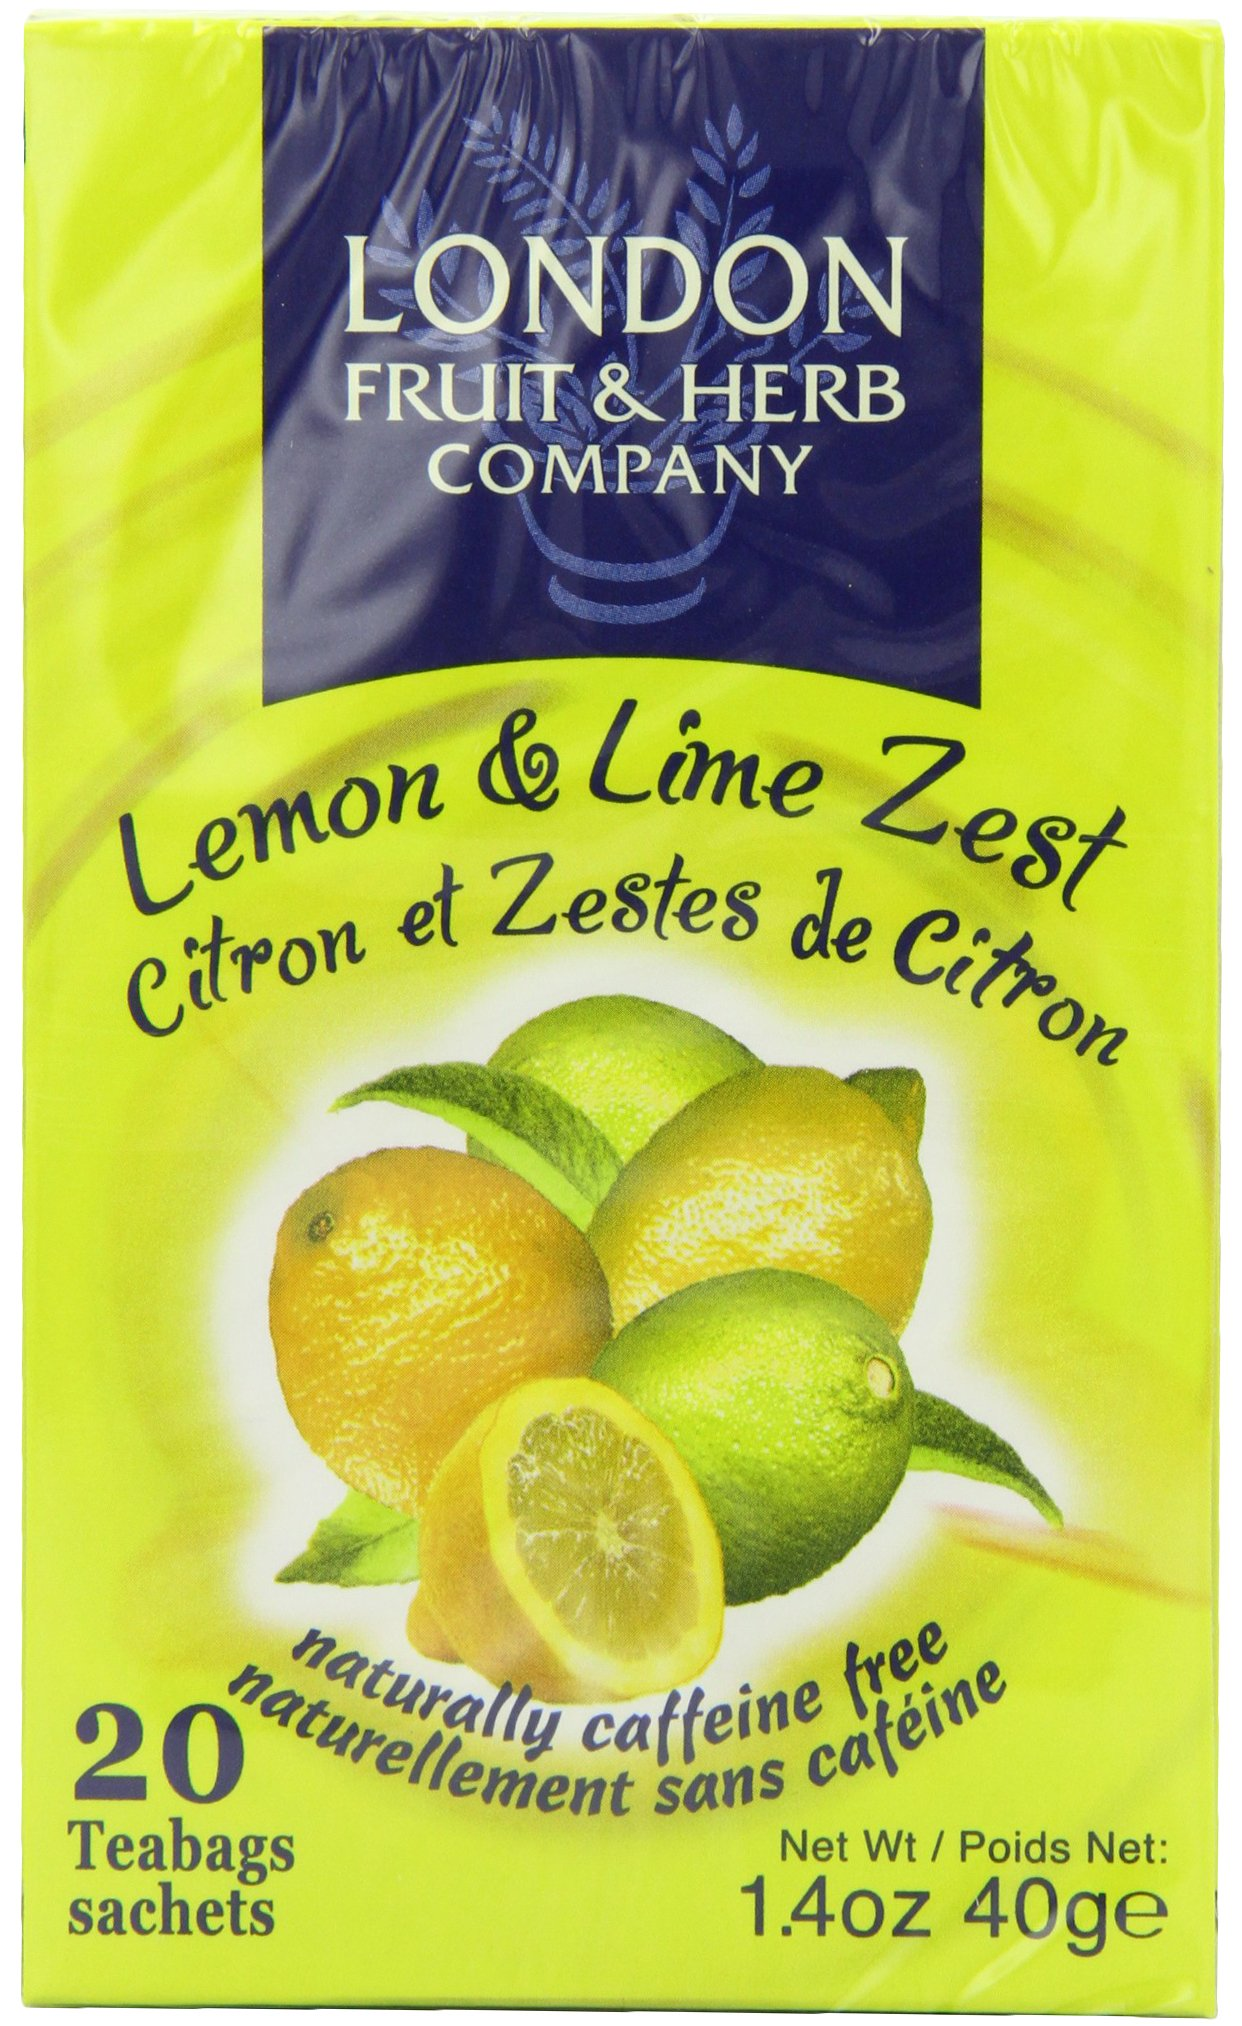 London Fruit and Herb Lemon and Lime Zest 20 Teabags (Pack of 6, Total 120 Teabags)